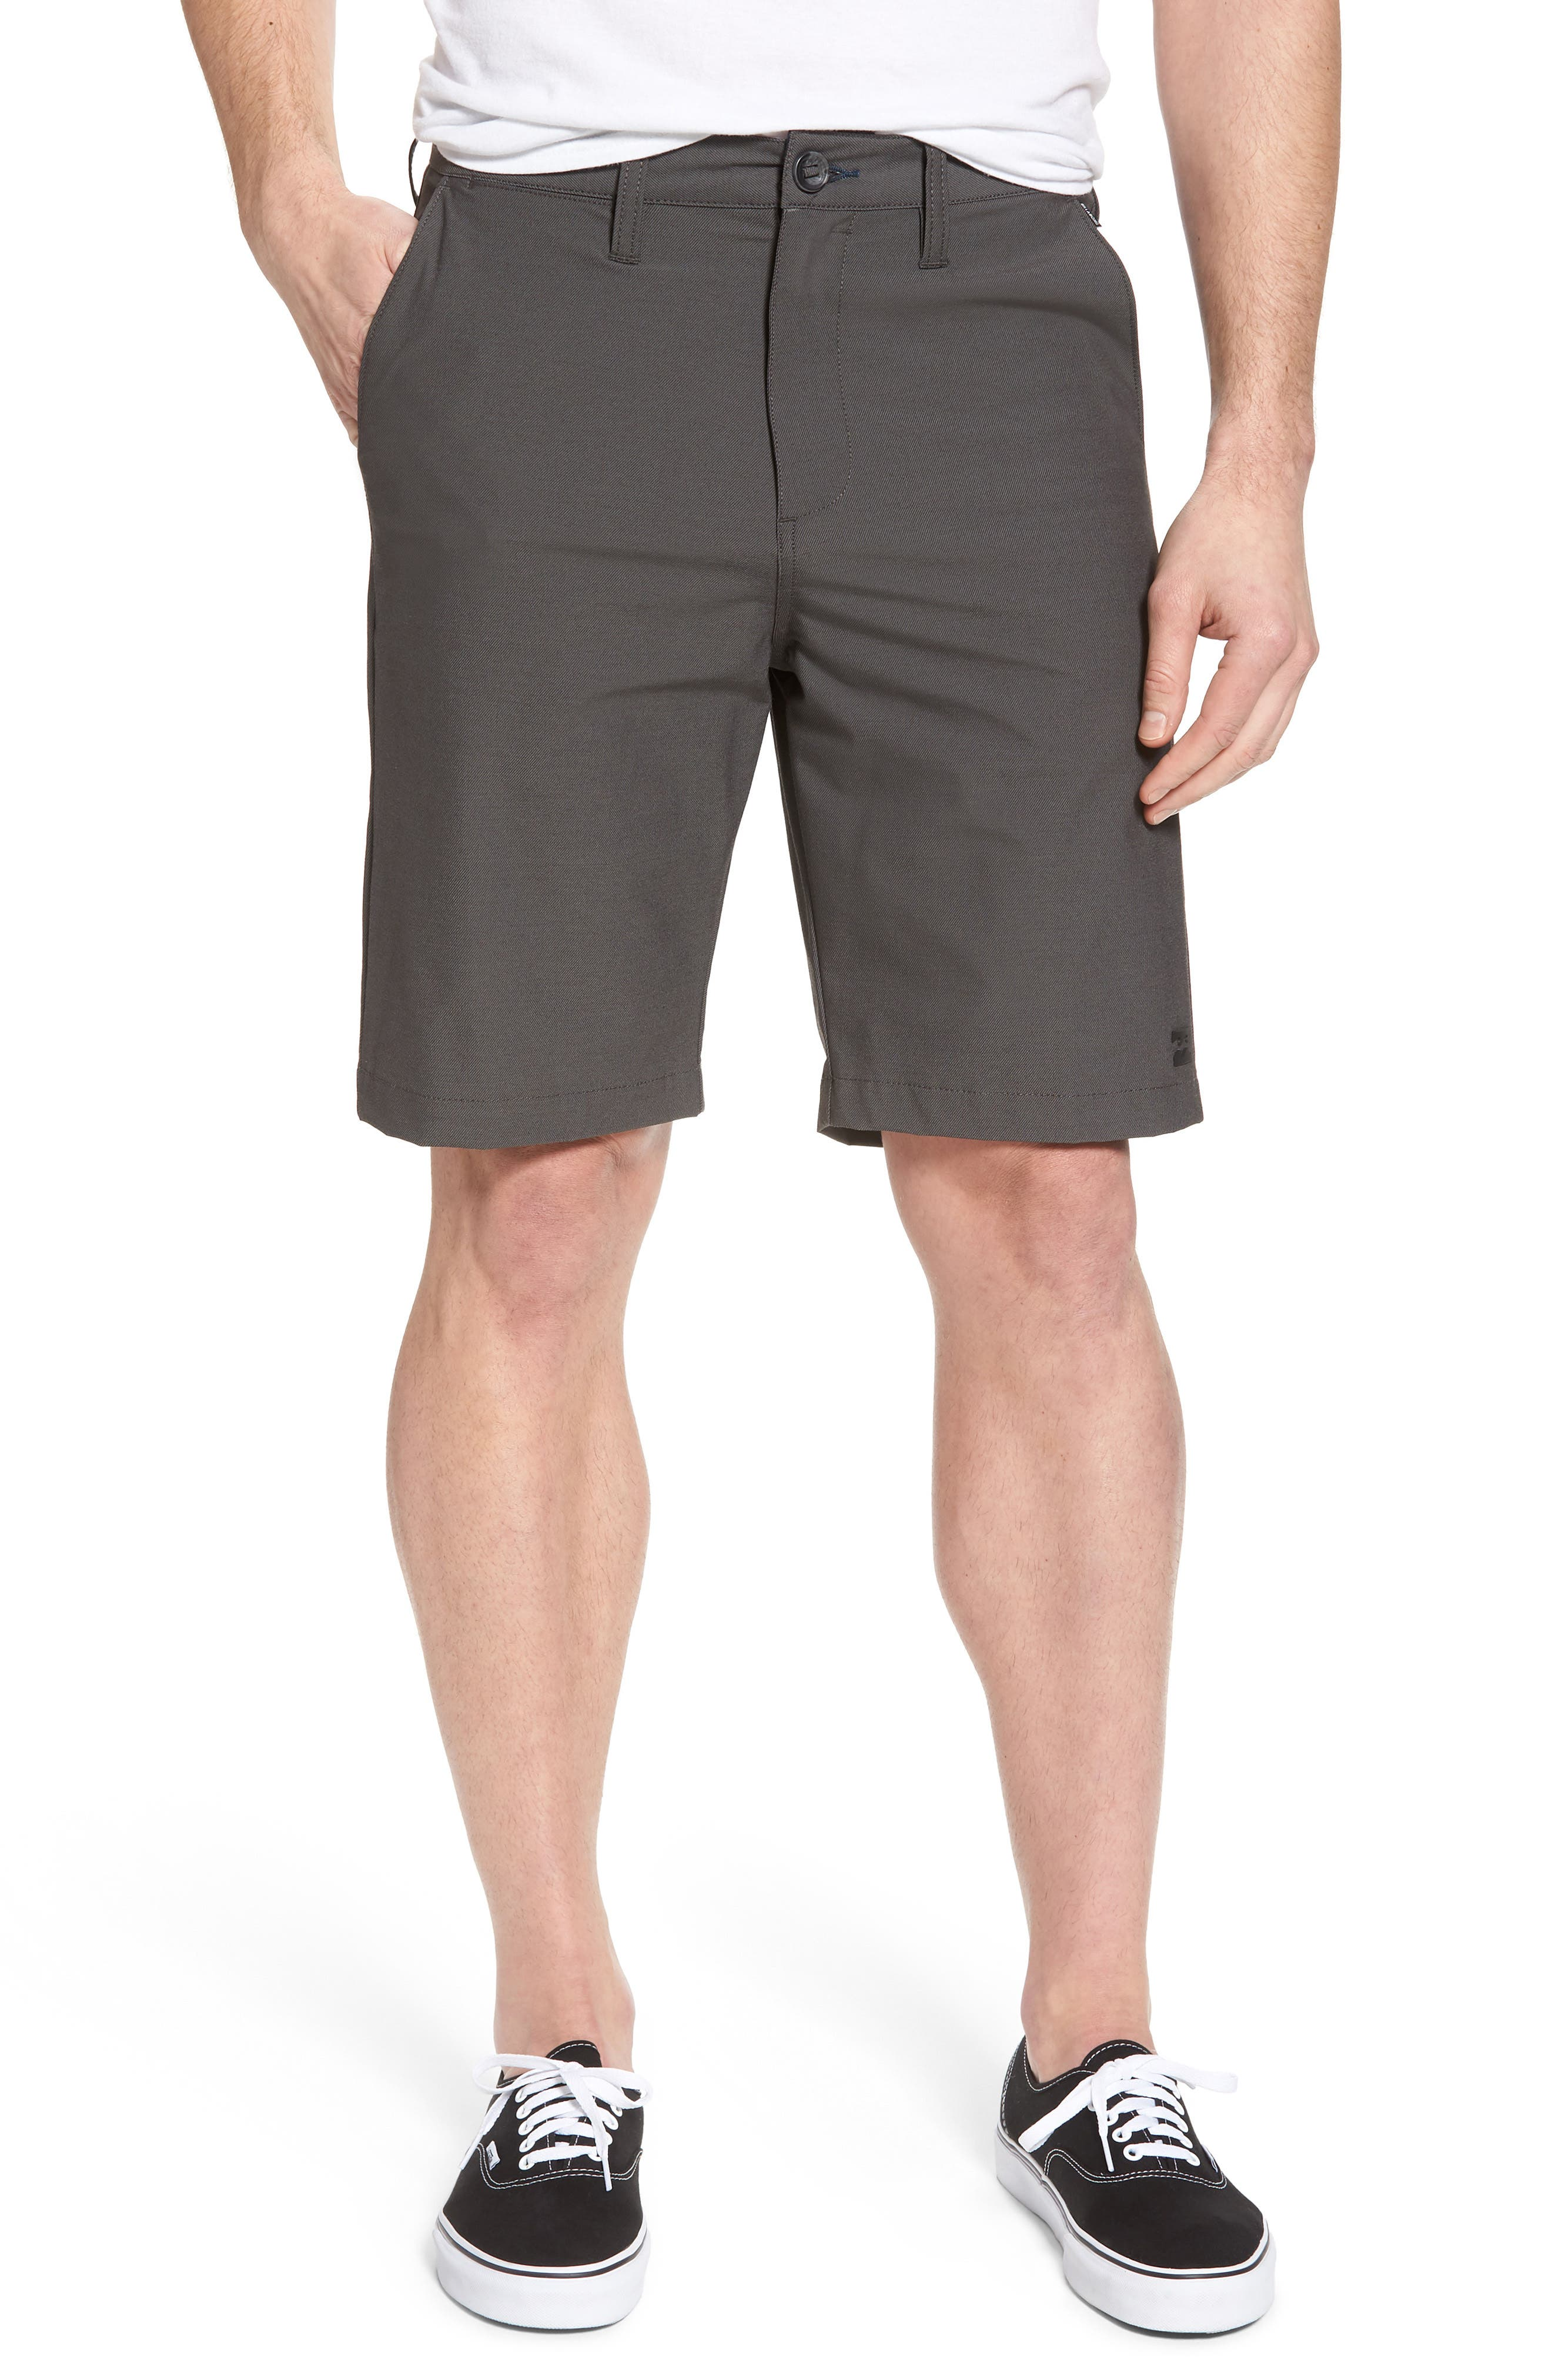 Crossfire X Submersible Twill Shorts,                         Main,                         color, Black